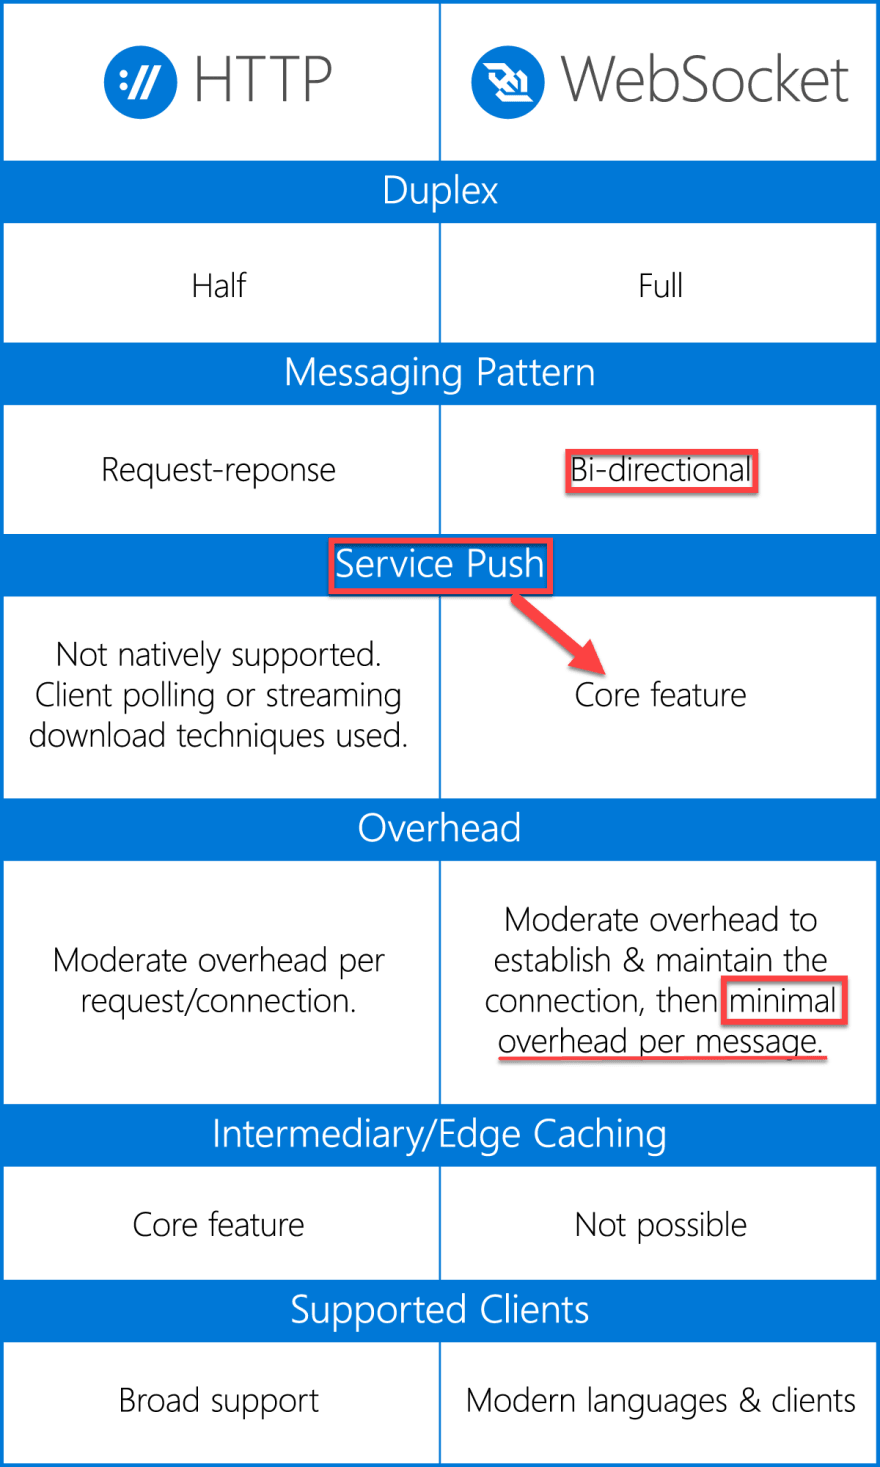 Image depicting the differences between HTTP and WebSockets